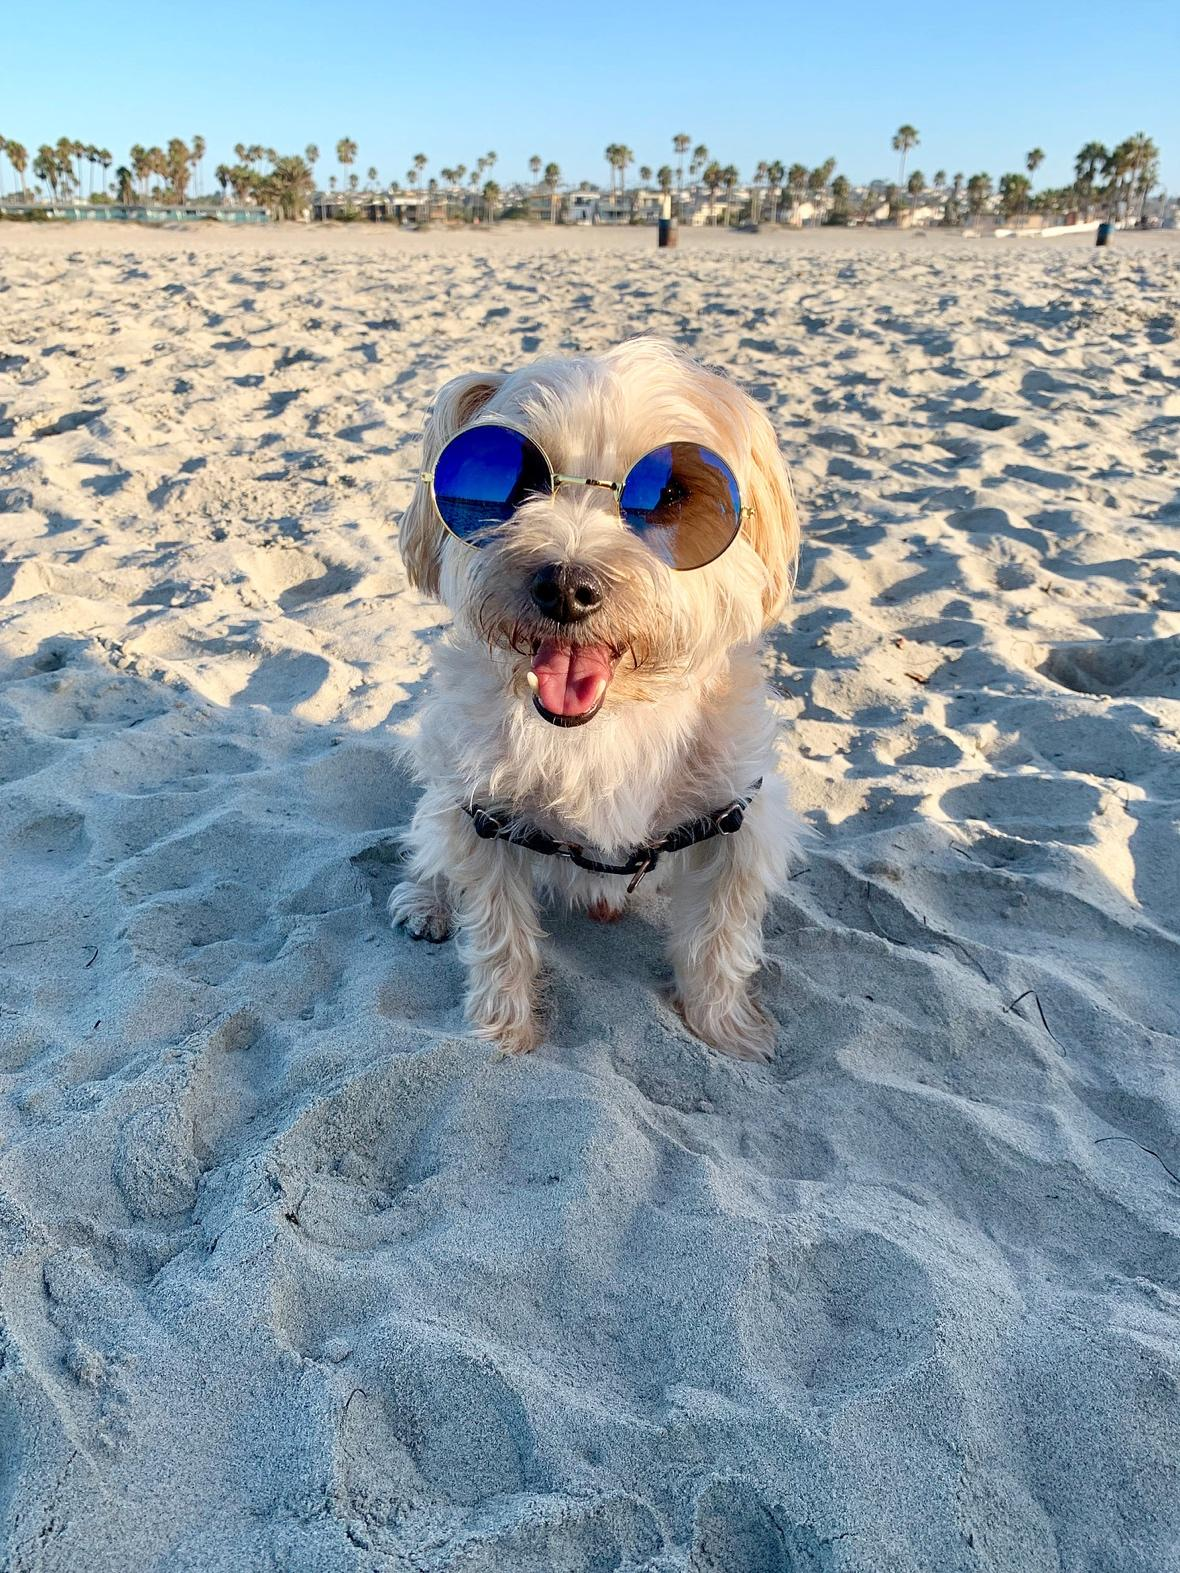 small dog maltese Yorkshire terrier travel to San Diego beach holiday in the sand sunglasses